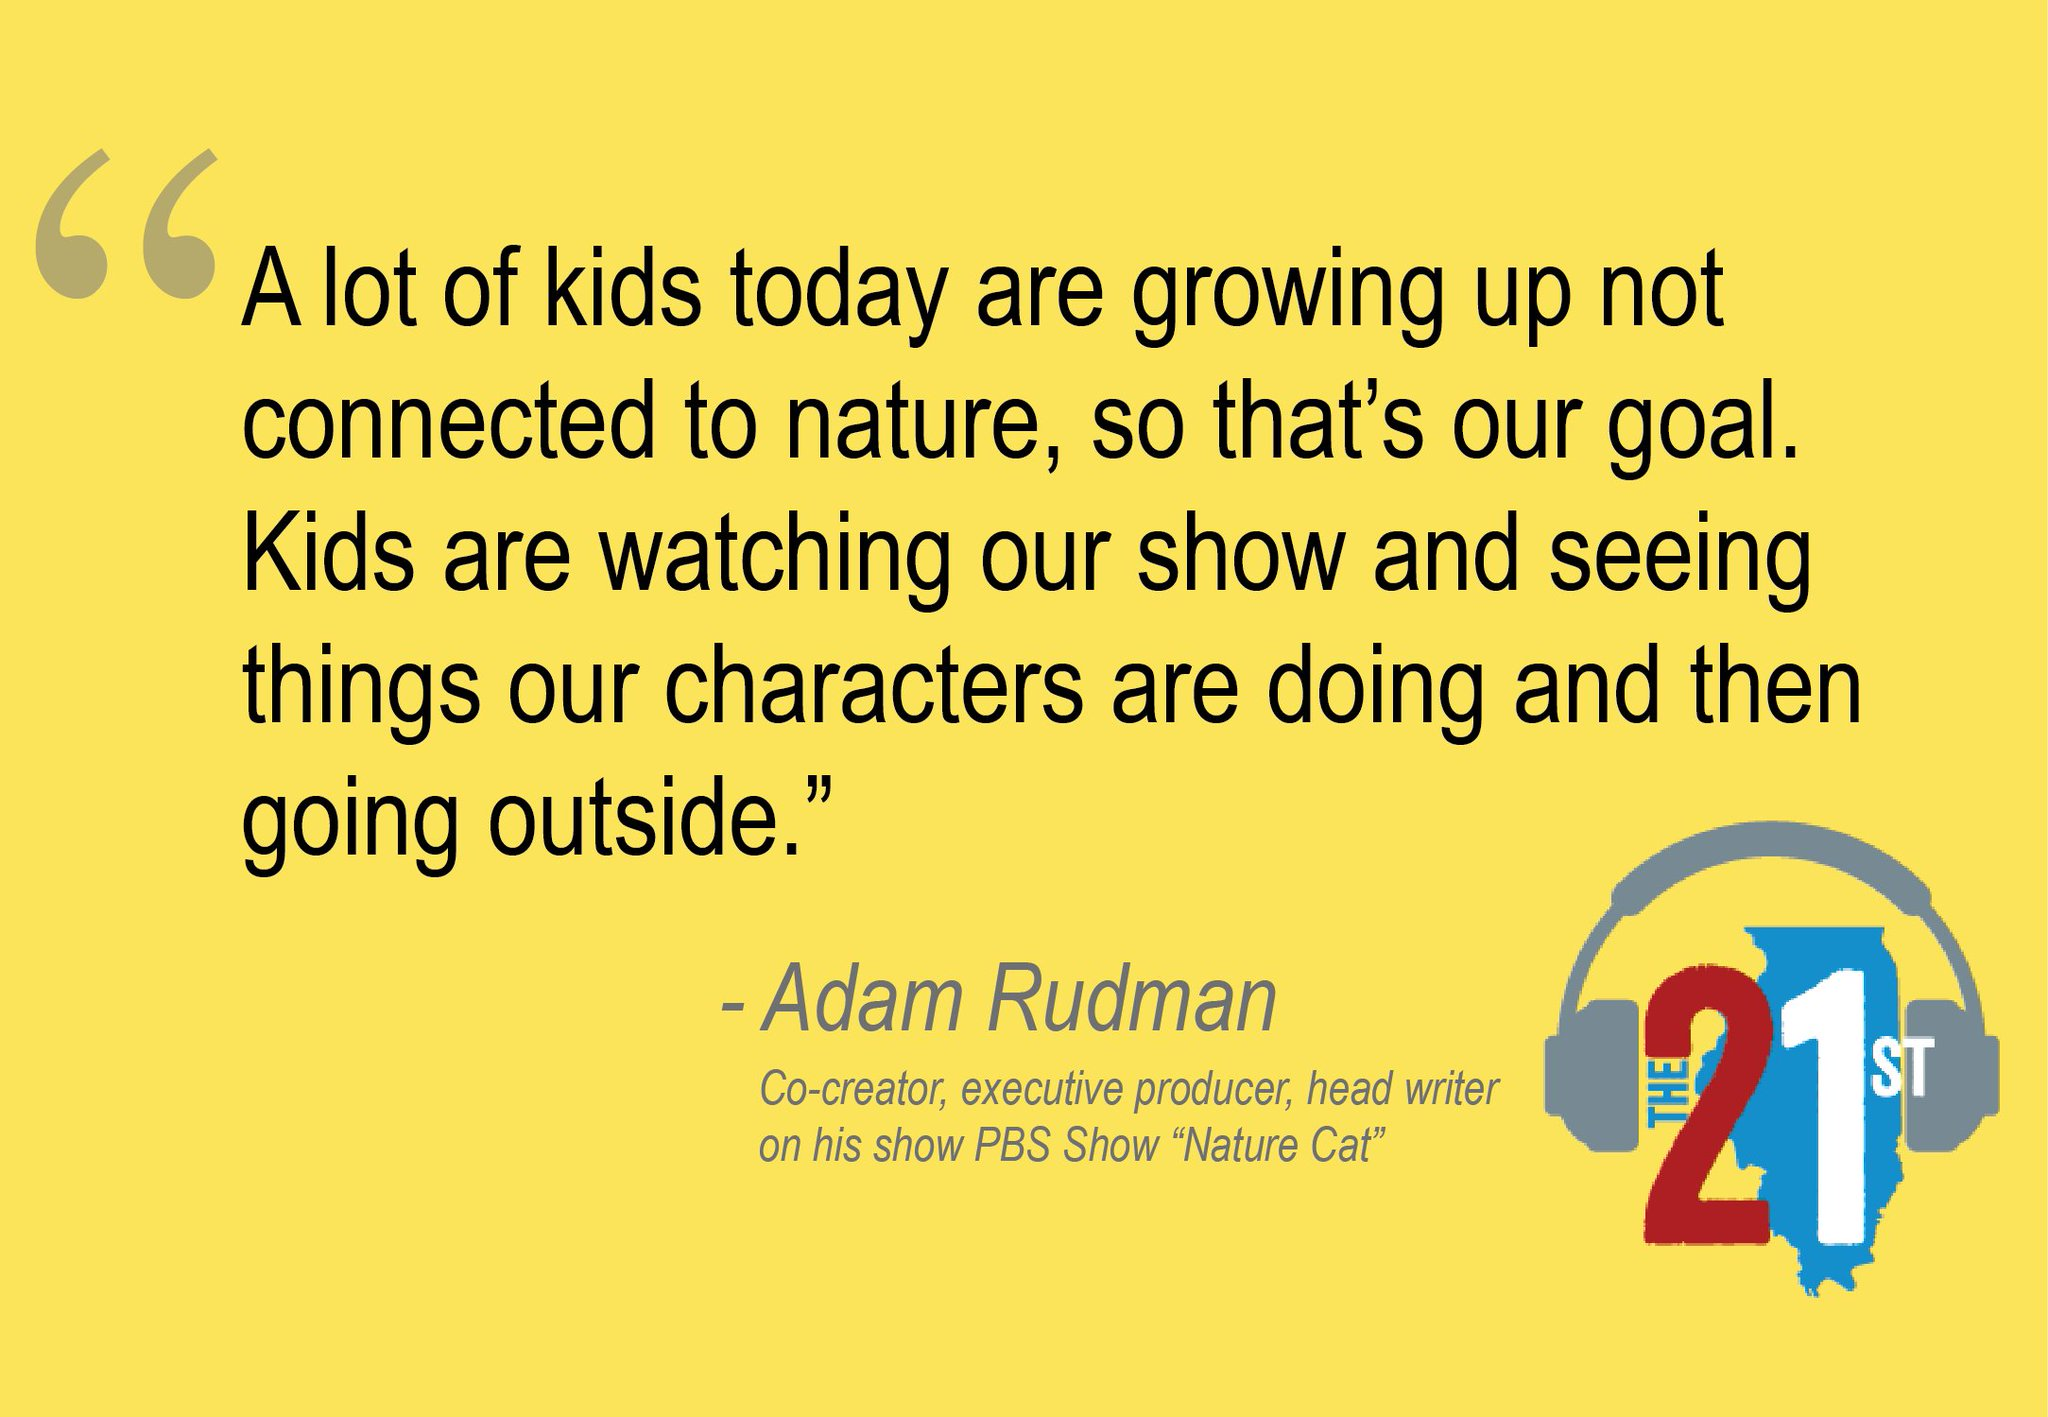 Co-creator Adam Rudman on the idea behind @NatureCatShow https://t.co/qKJRj7RYHh